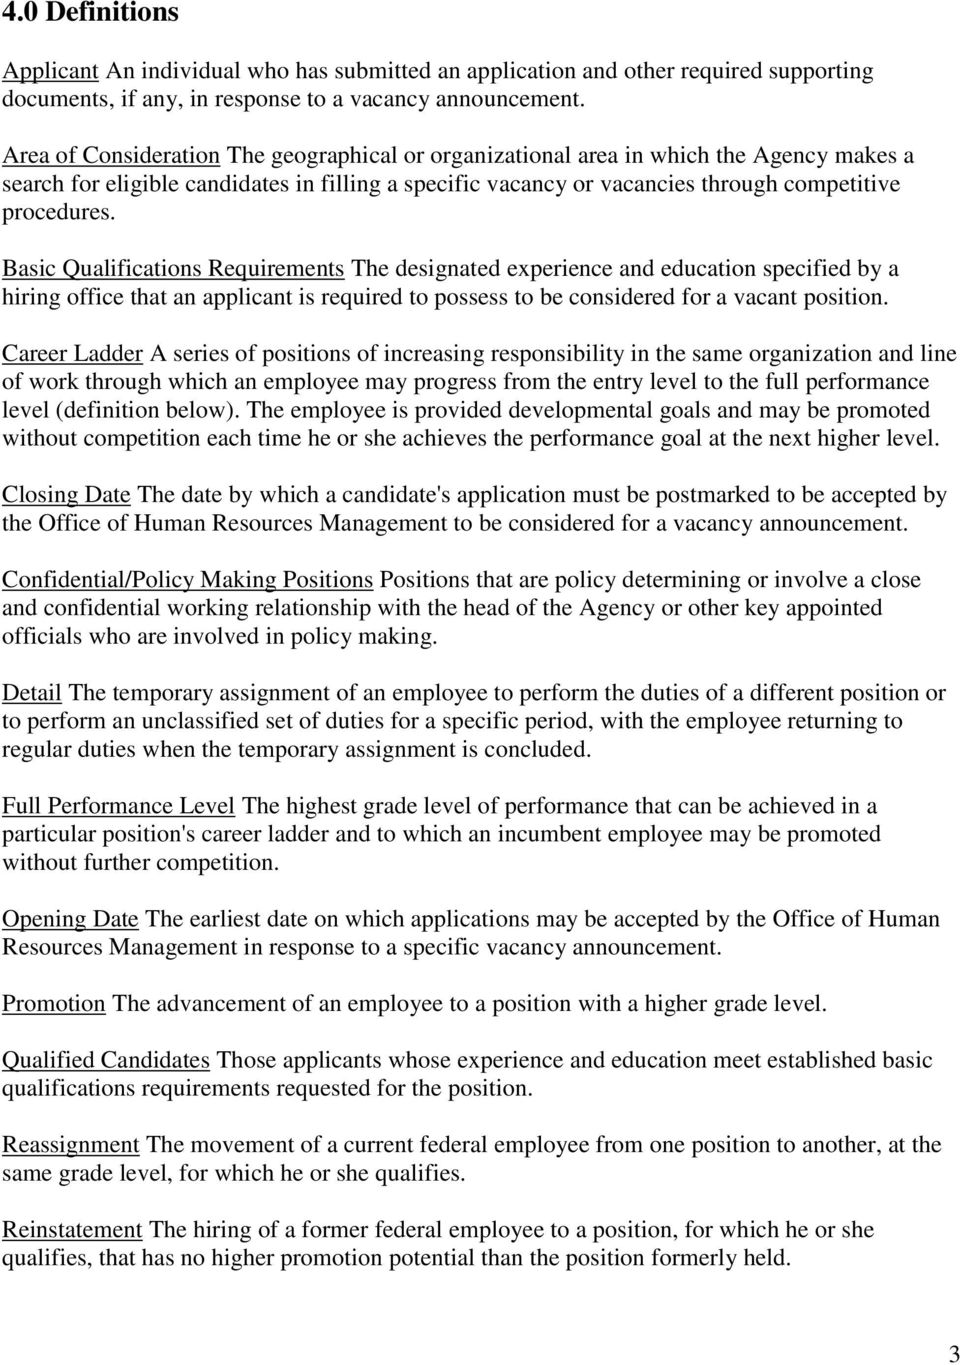 Basic Qualifications Requirements The designated experience and education specified by a hiring office that an applicant is required to possess to be considered for a vacant position.